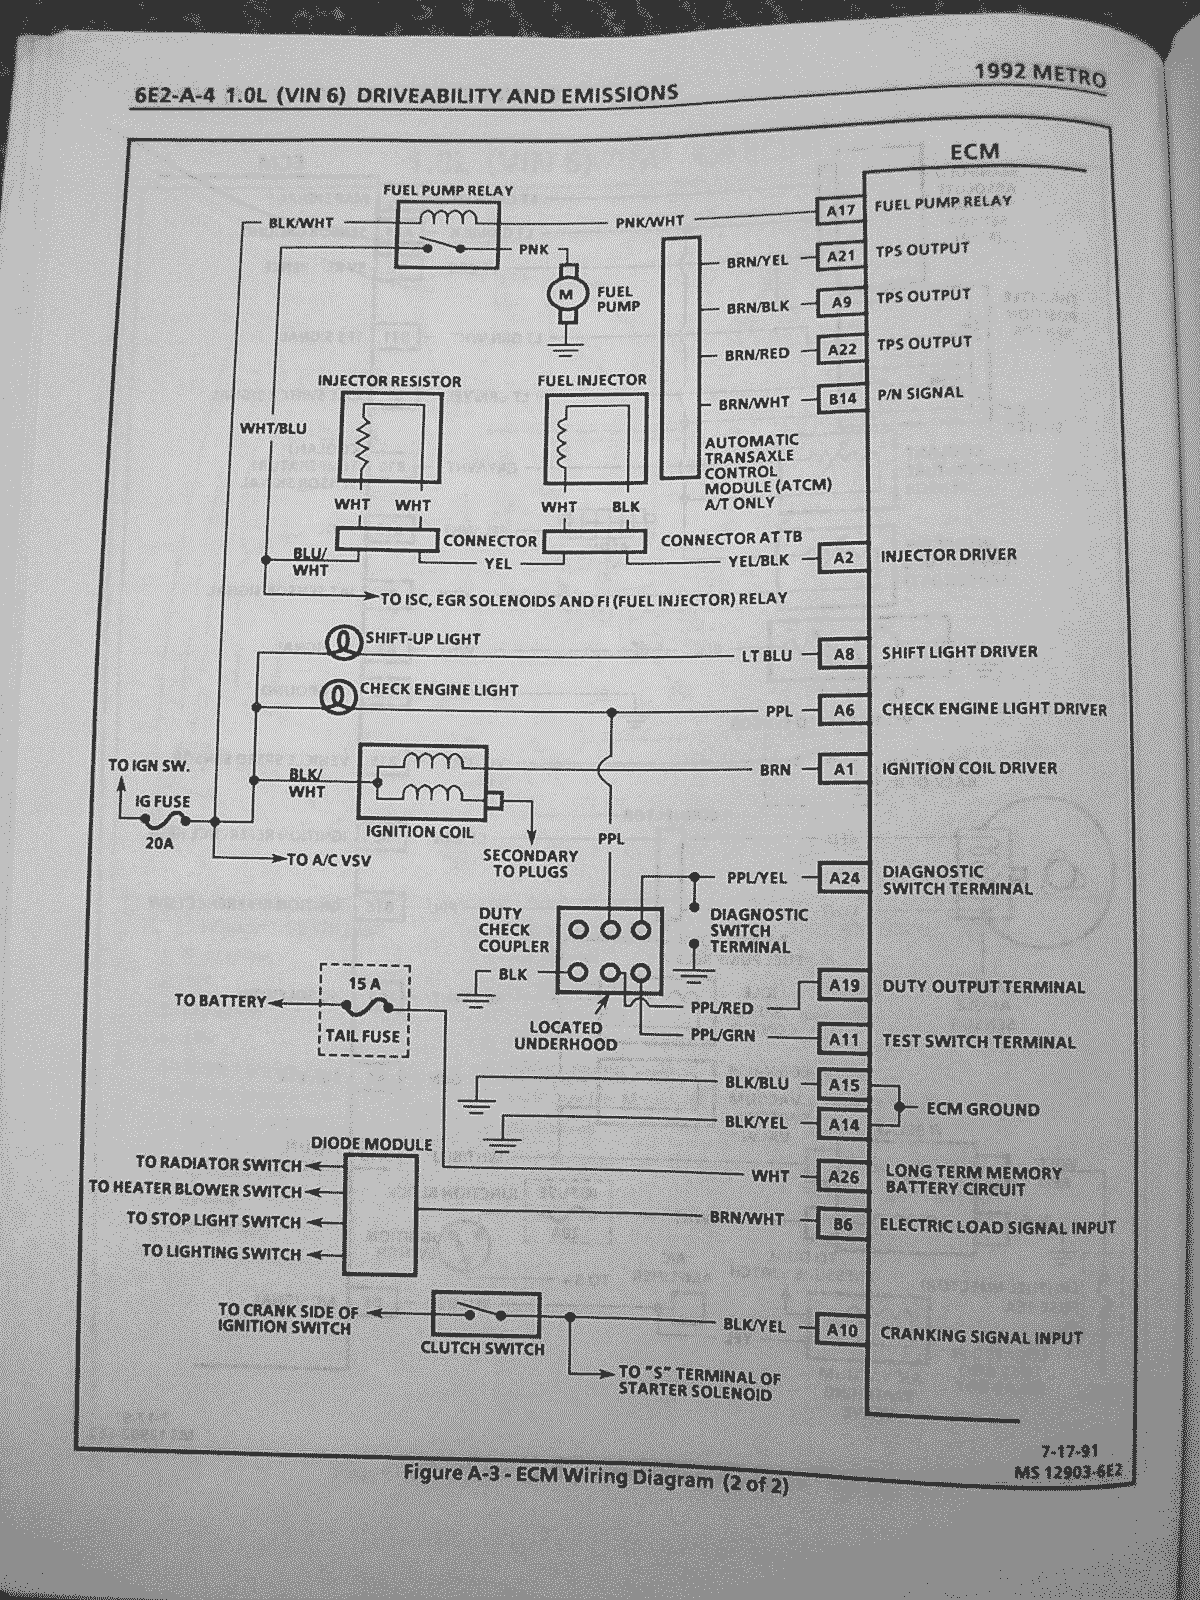 Geo Metro And Suzuki Swift Wiring Diagrams Metroxfi Com 2000 Chevy Tracker  Wiring-Diagram 2000 Chevy Metro Wiring Diagram